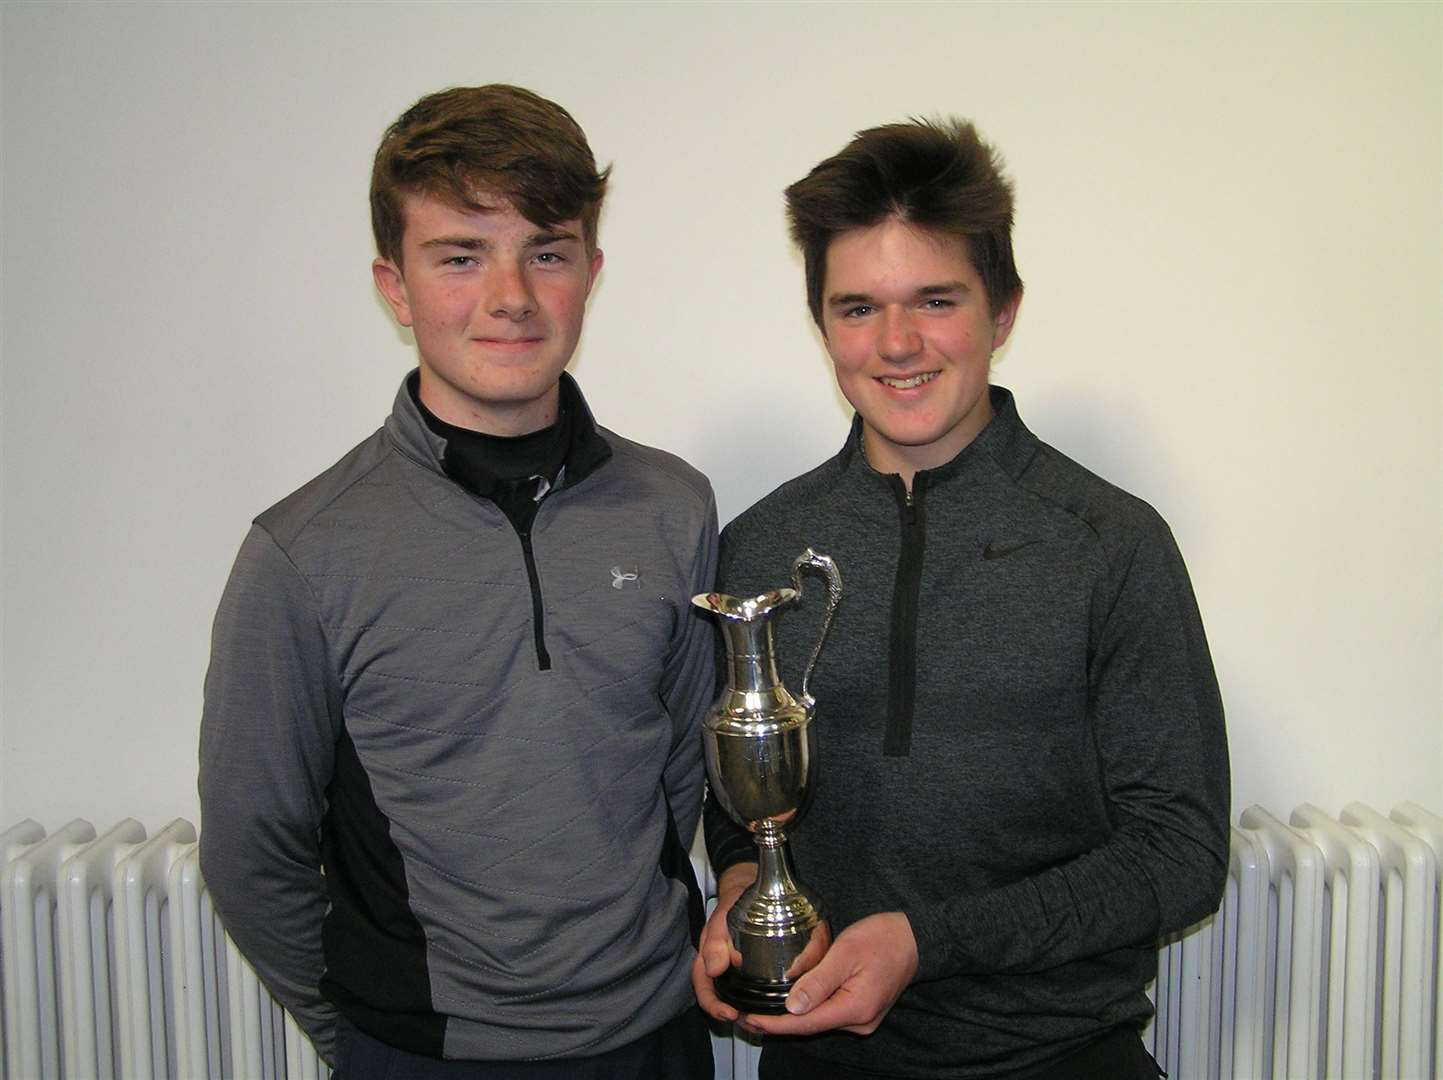 George Durkan, left, and Max Hopkins of Bishop's Stortford Golf Club at the Hertfordshire Schools' Scratch Tournament (8177425)